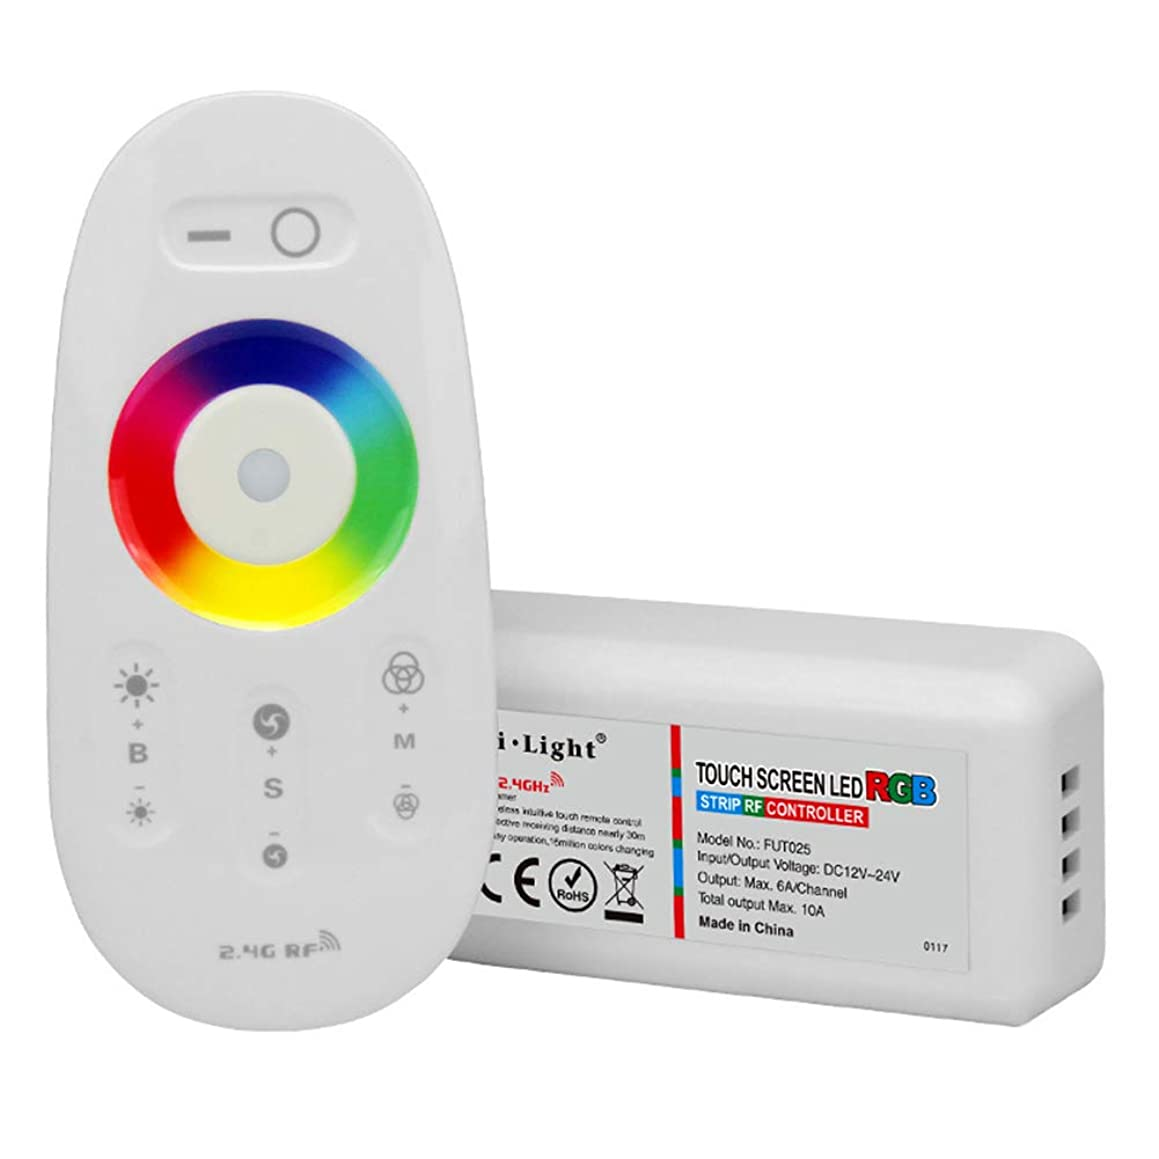 Gyswshh Milight WiFi Remote Dimmer Touch Screen LED RGB Strip RF Light Lamp Controller Random